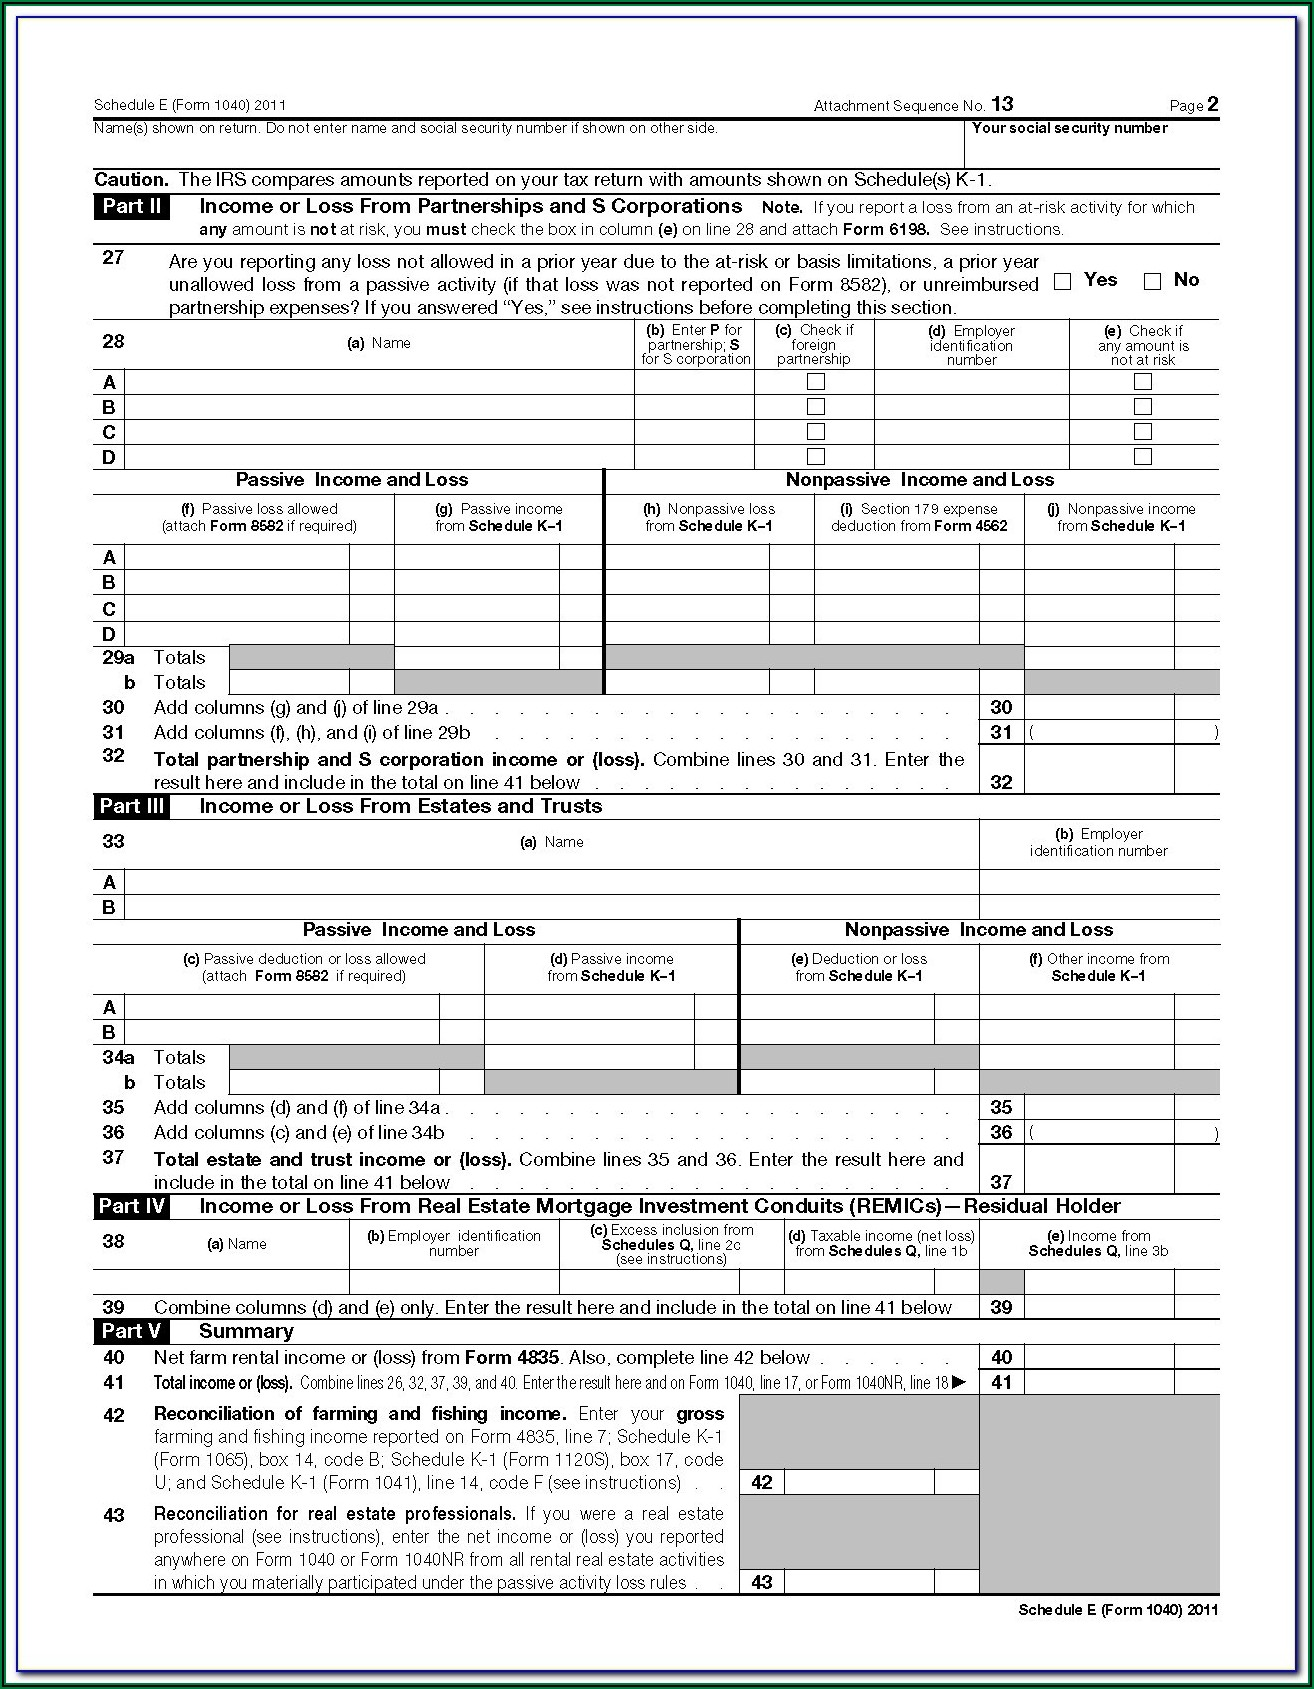 2015 Federal Tax Form 1040a Instructions